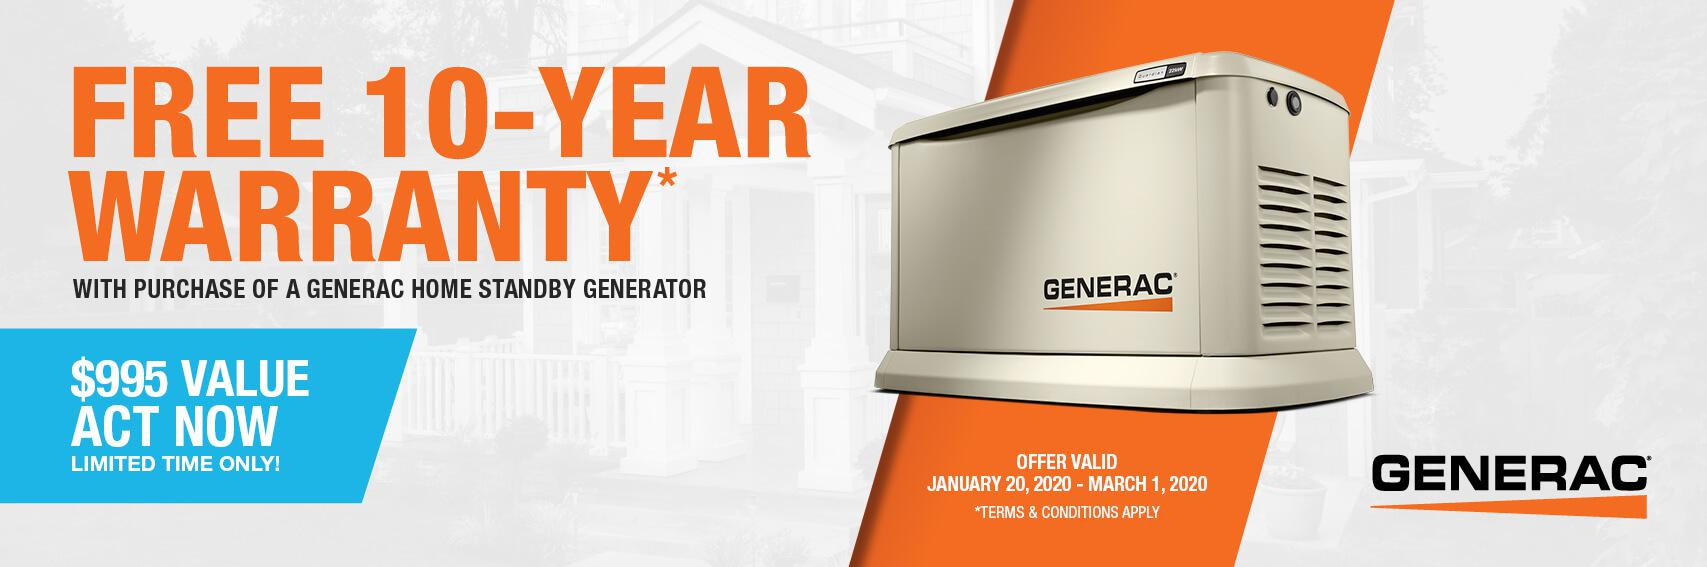 Homestandby Generator Deal | Warranty Offer | Generac Dealer | Midland Park, NJ